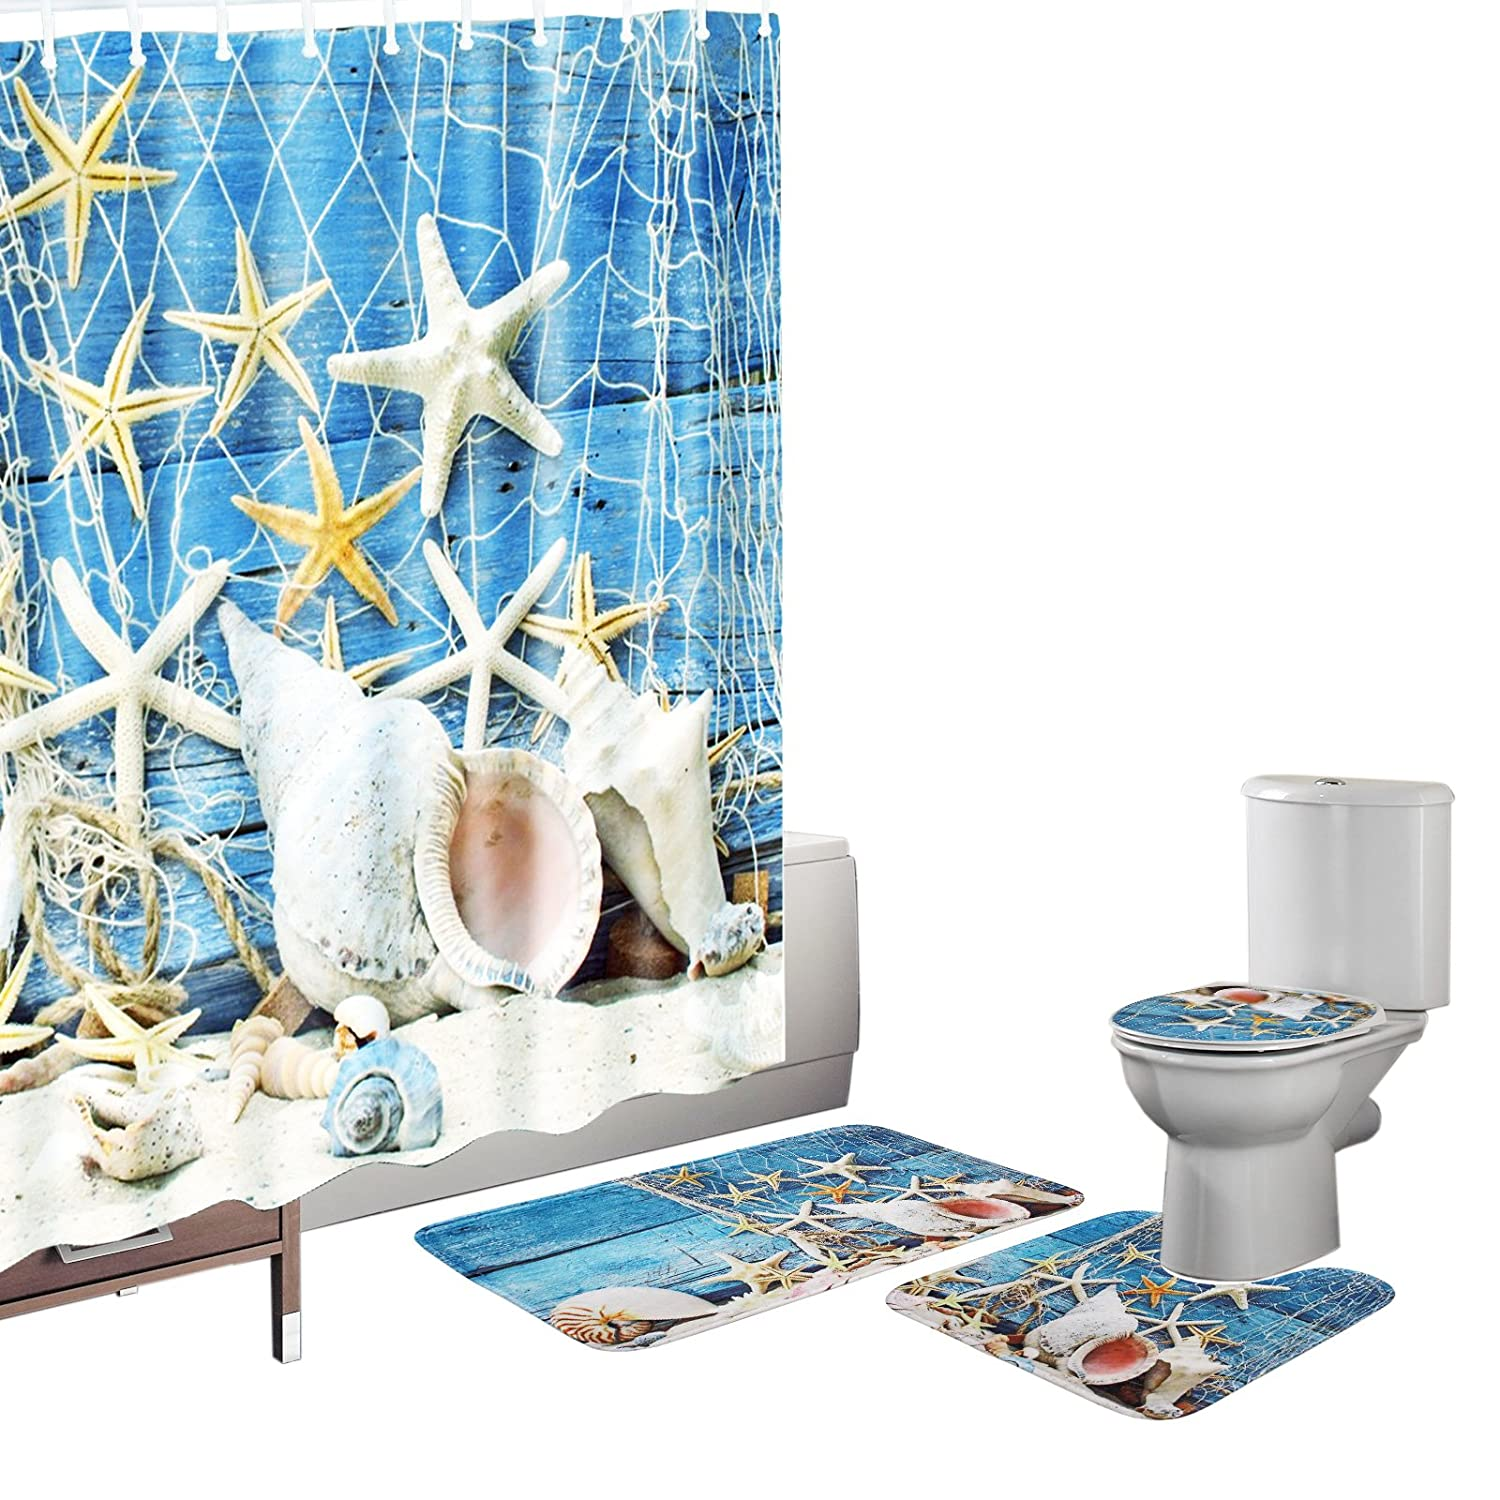 Bearbae 16 Pieces Bath Mat Set Shower Curtain Set Non-slip Blue Seashells Starfish Bathroom Rug Carpet Toilet Cover Shower Curtain and 12 Hooks BB